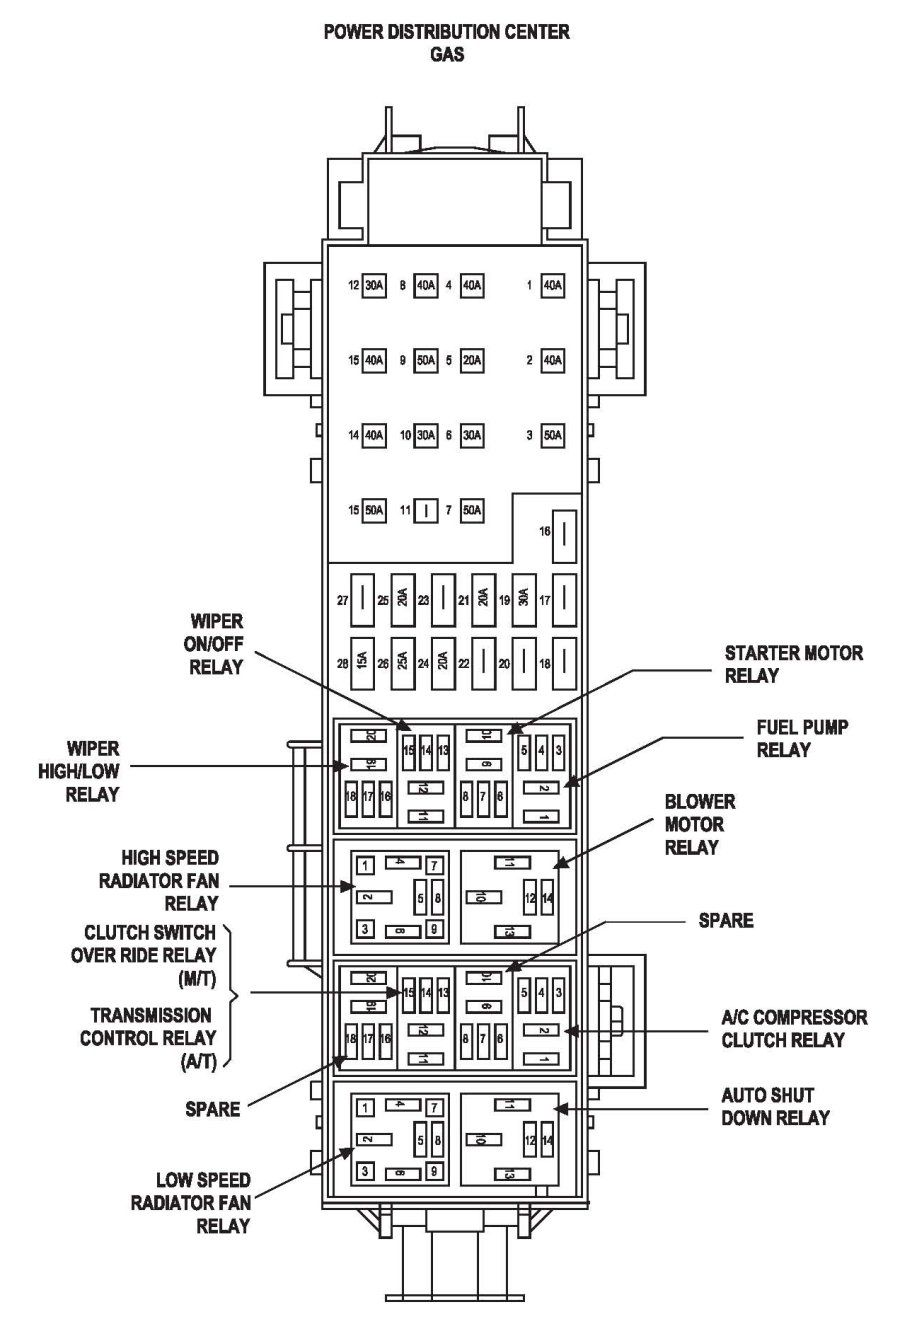 Fuse Box Diagram For Jeep Liberty 2002 : Jeep liberty fuse box diagram image details